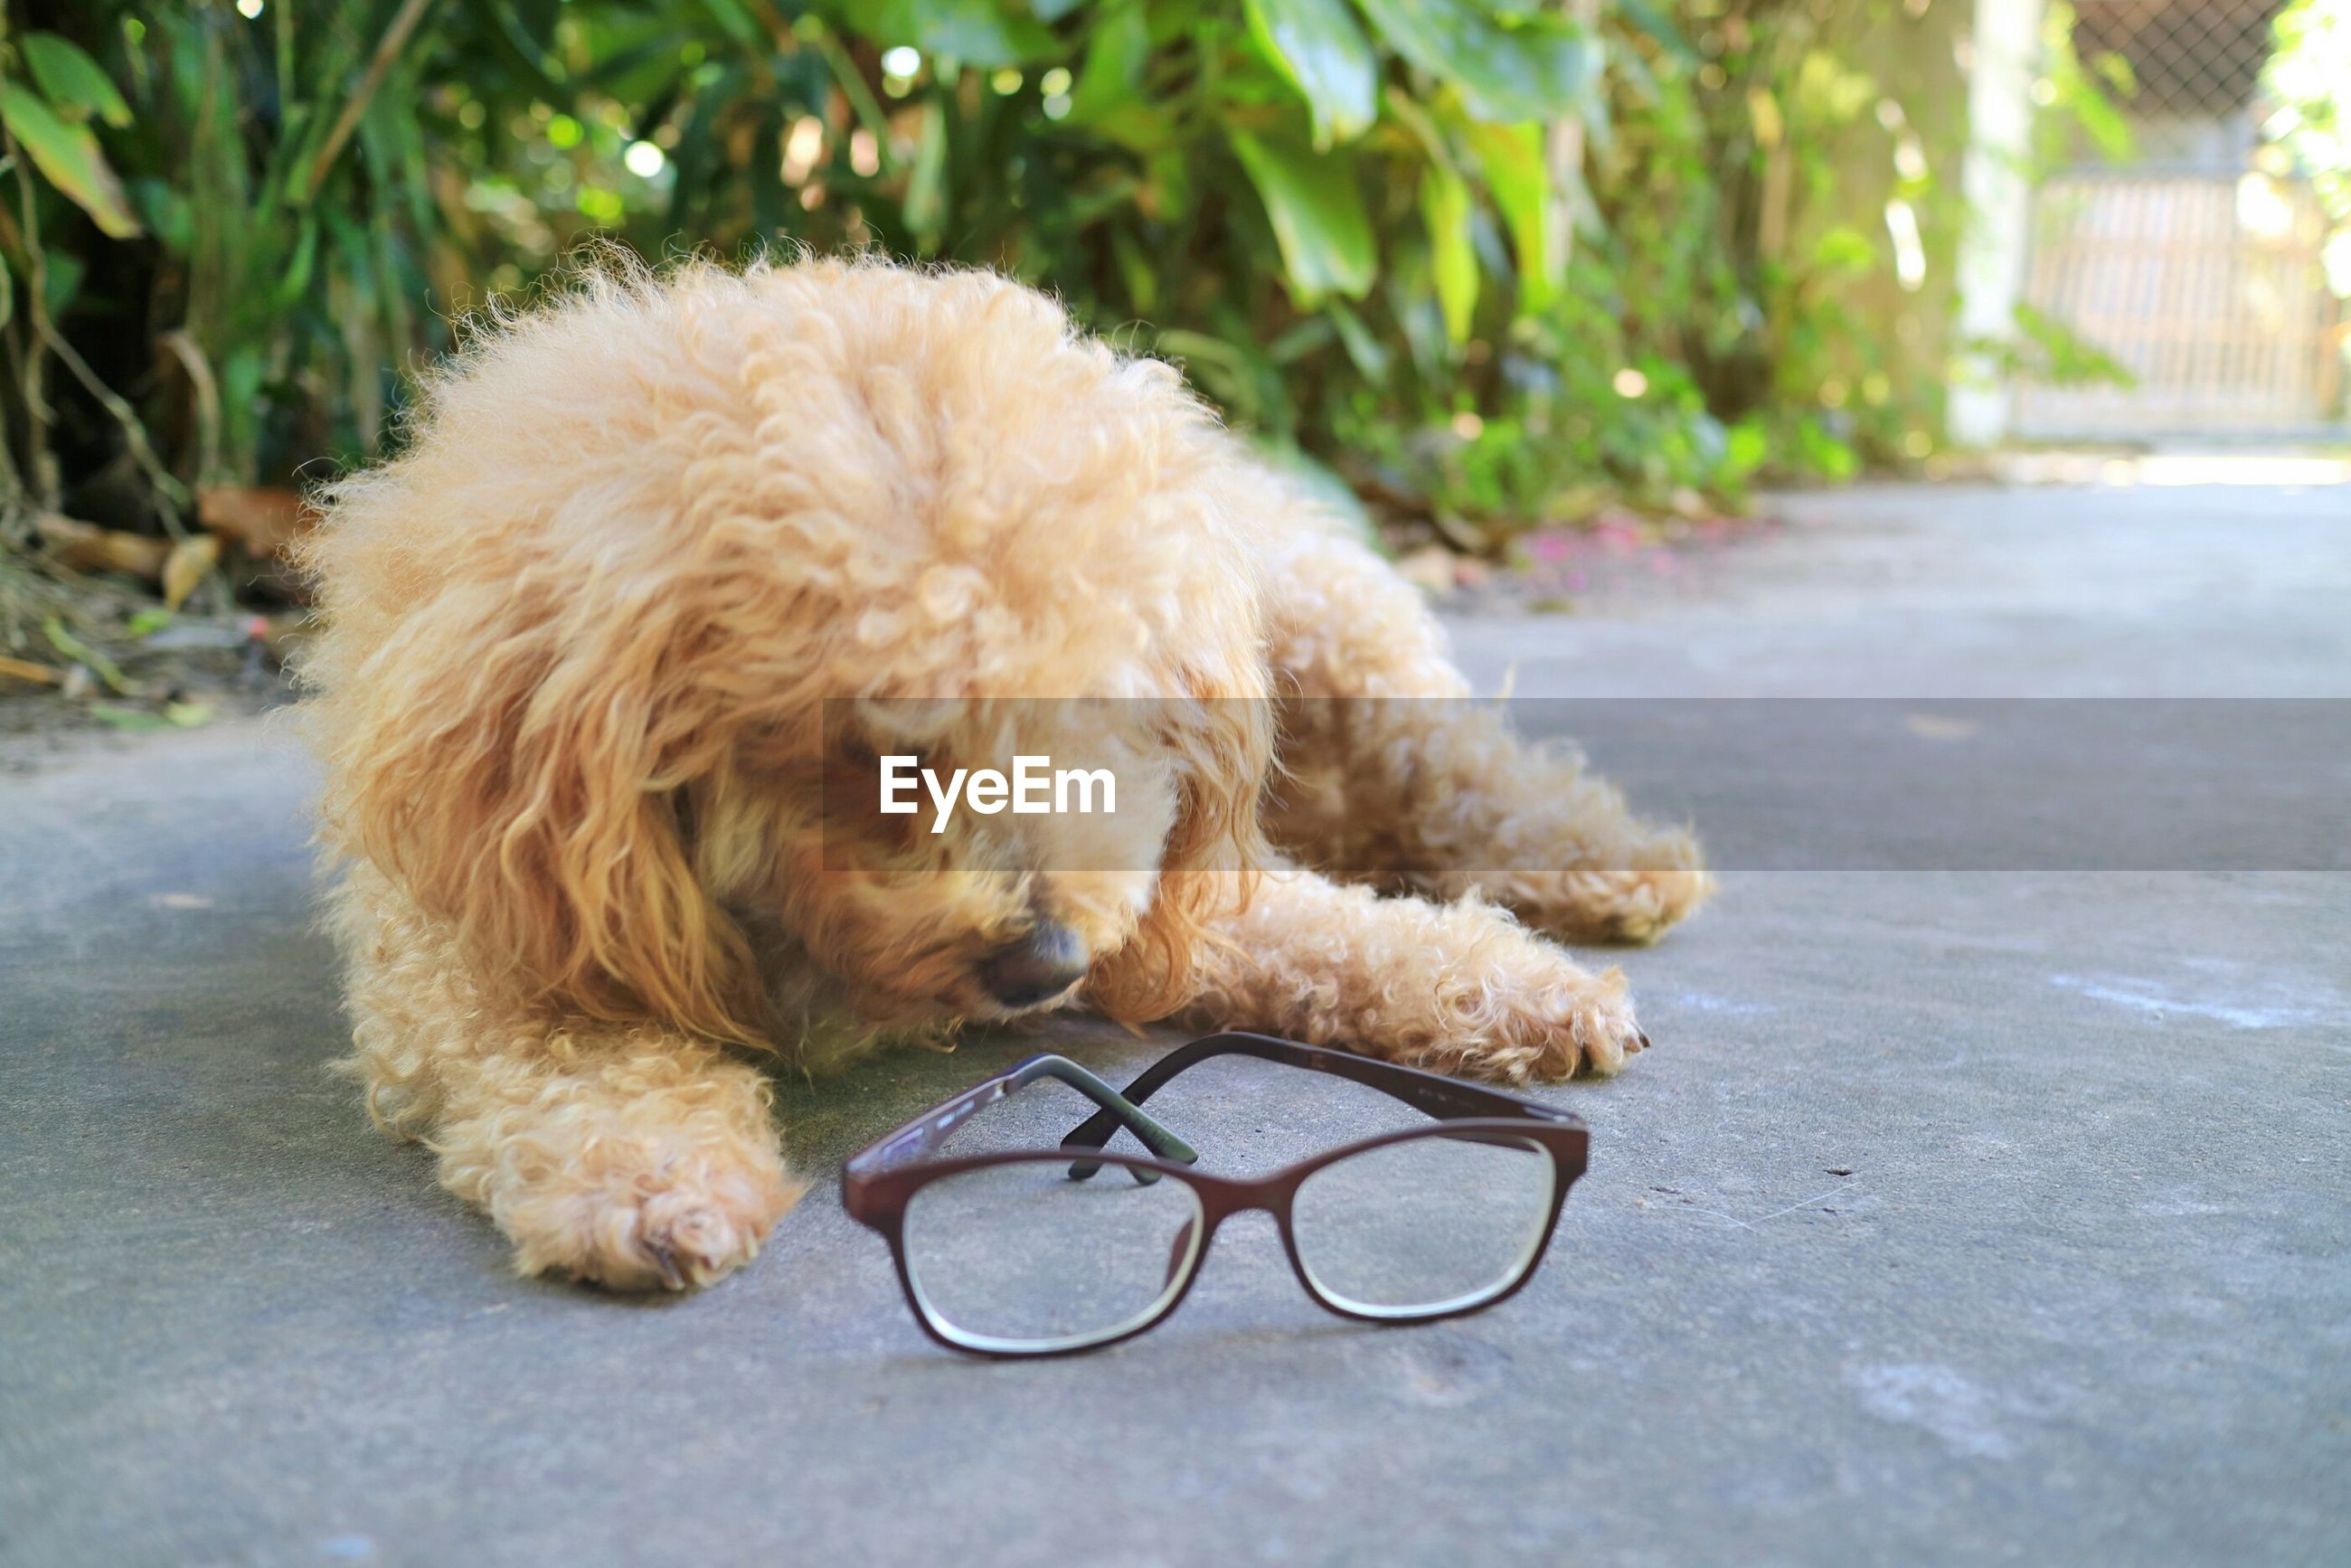 A cute yellow poodle dog lying on the concrete floor with glasses. take a break after work hard.